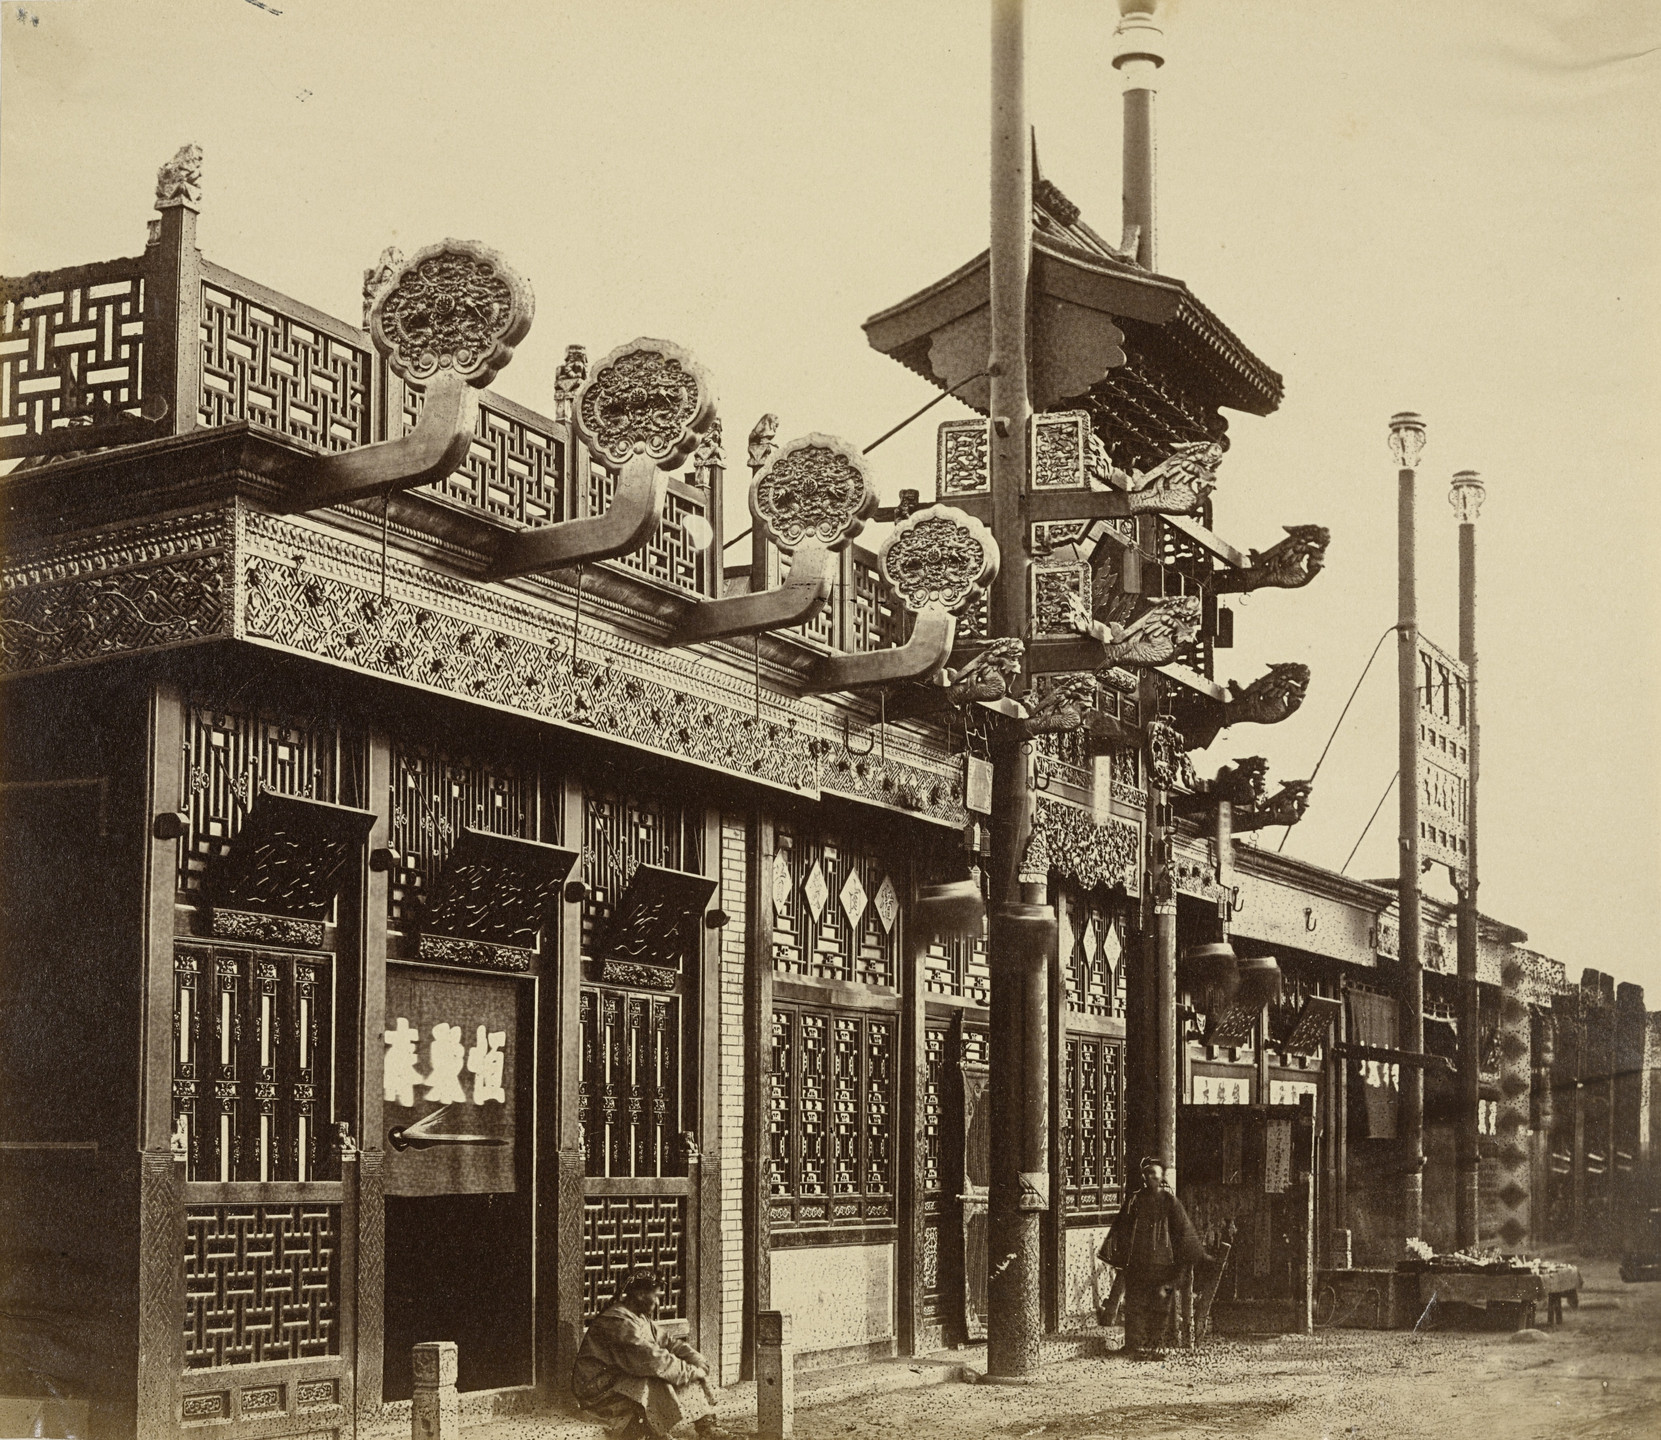 Felice Beato. Shops and Street, Chinese City of Peking. October 1860